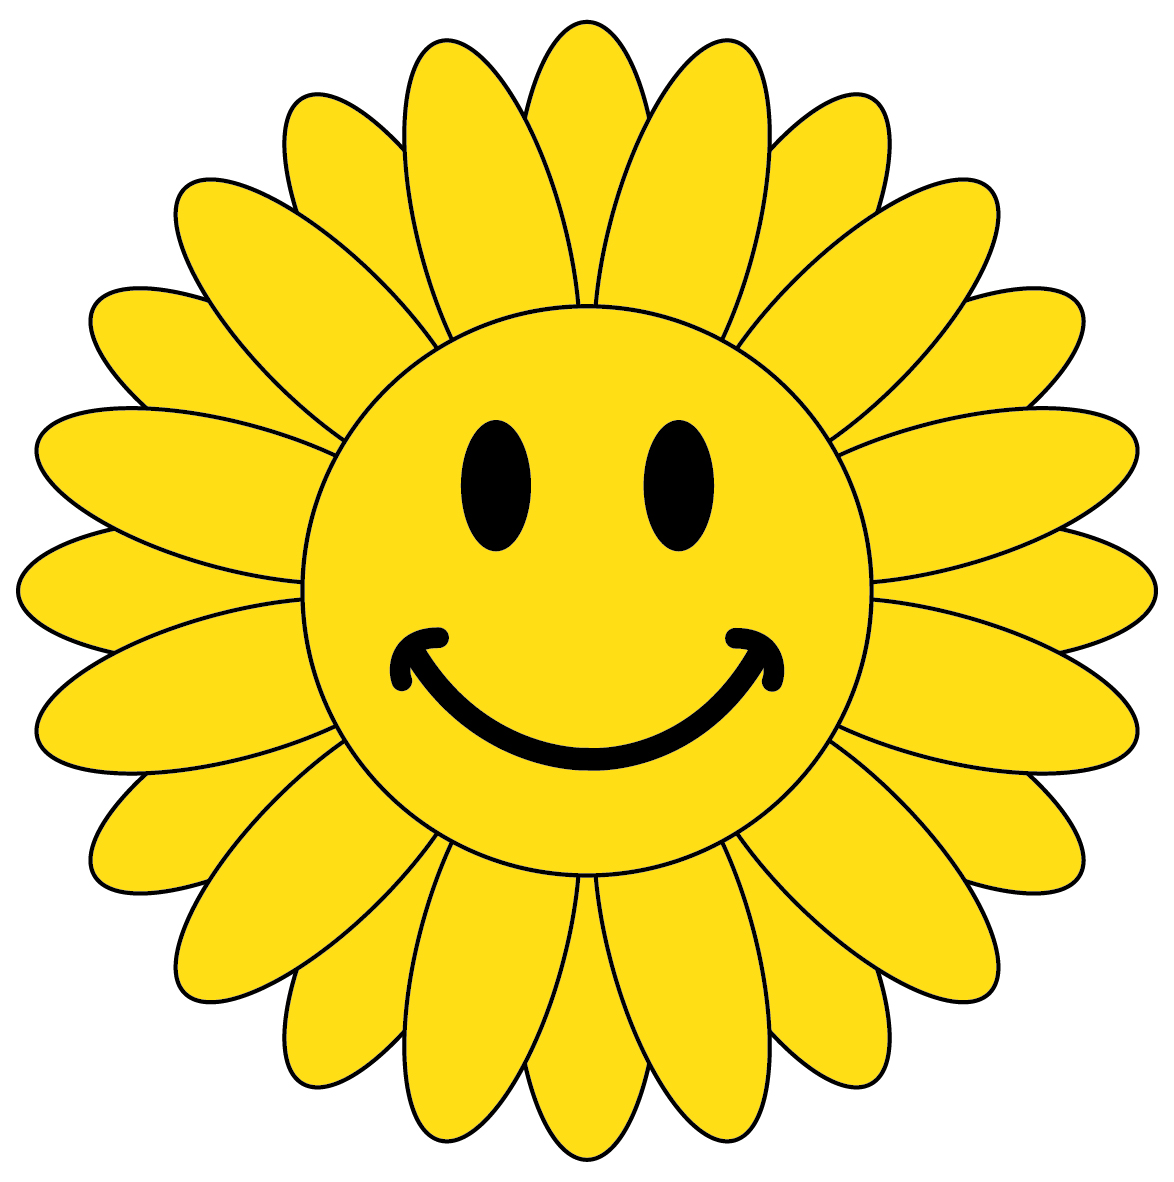 Smileys clipart sunflower Image face 3 clip smiley